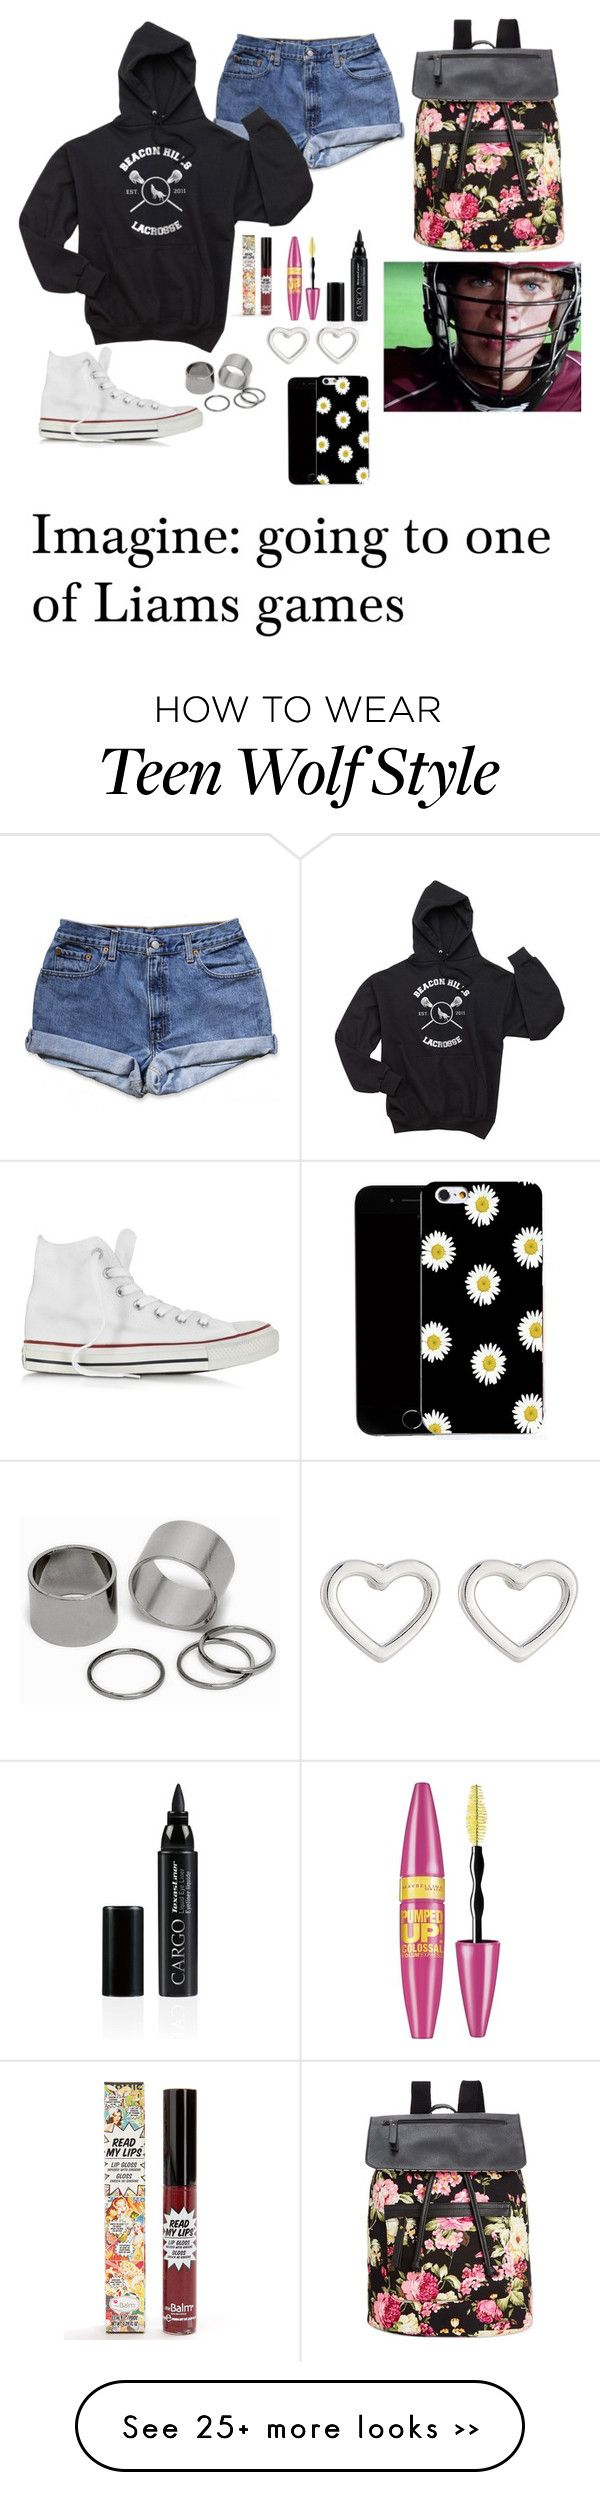 """teen wolf imagine"" by thedisneyschool on Polyvore"